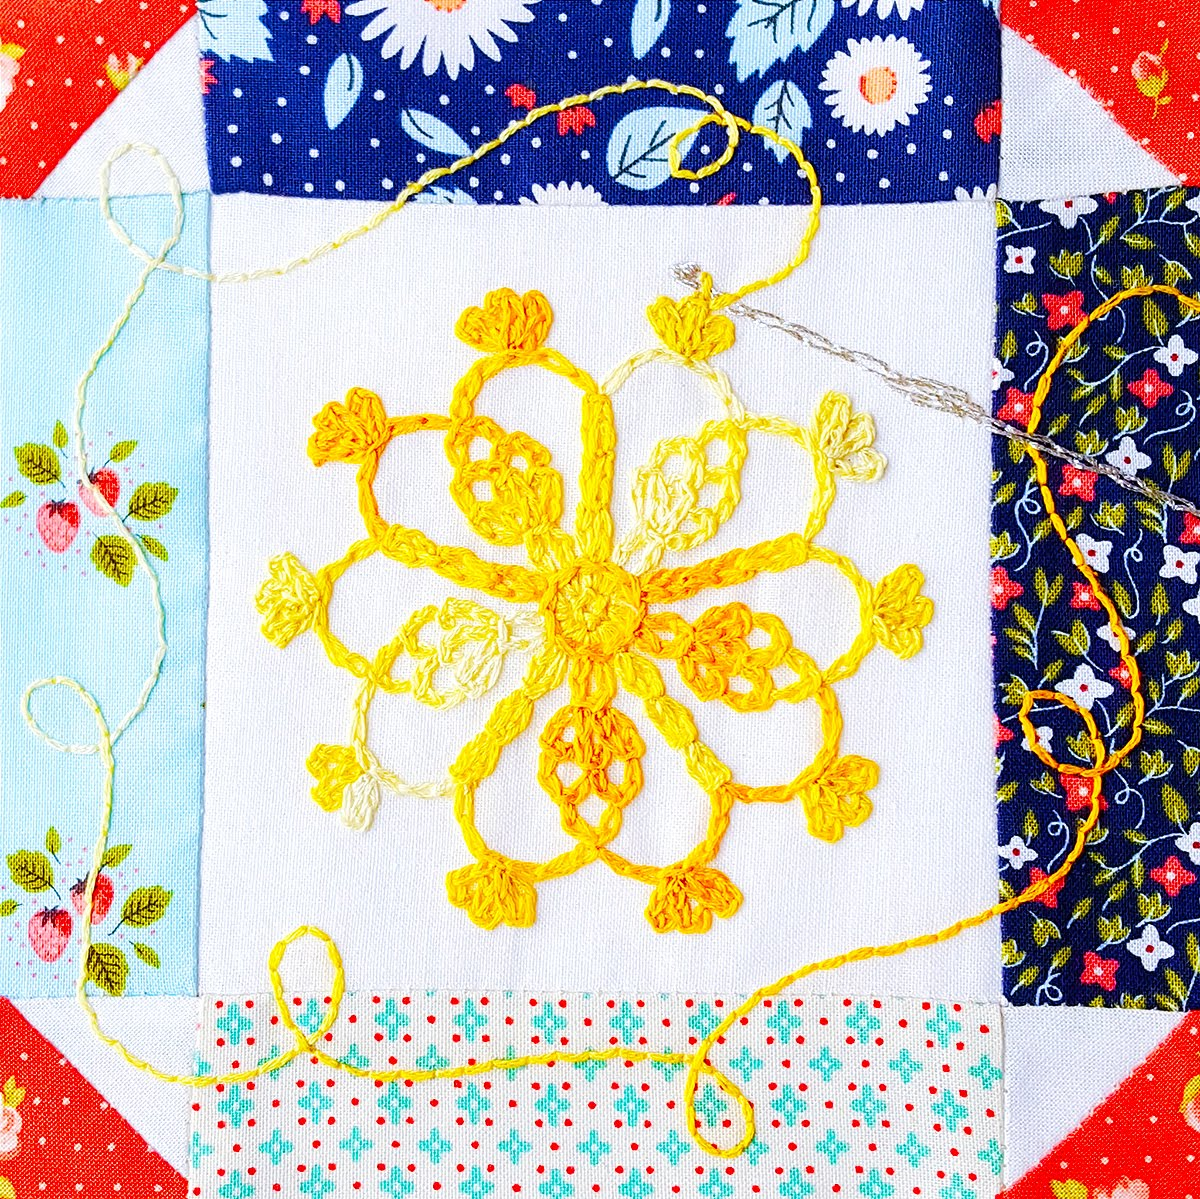 Crochet Quilt Block Patterns : Chain stitching in embroidery and crochet - My block for the Splendid ...